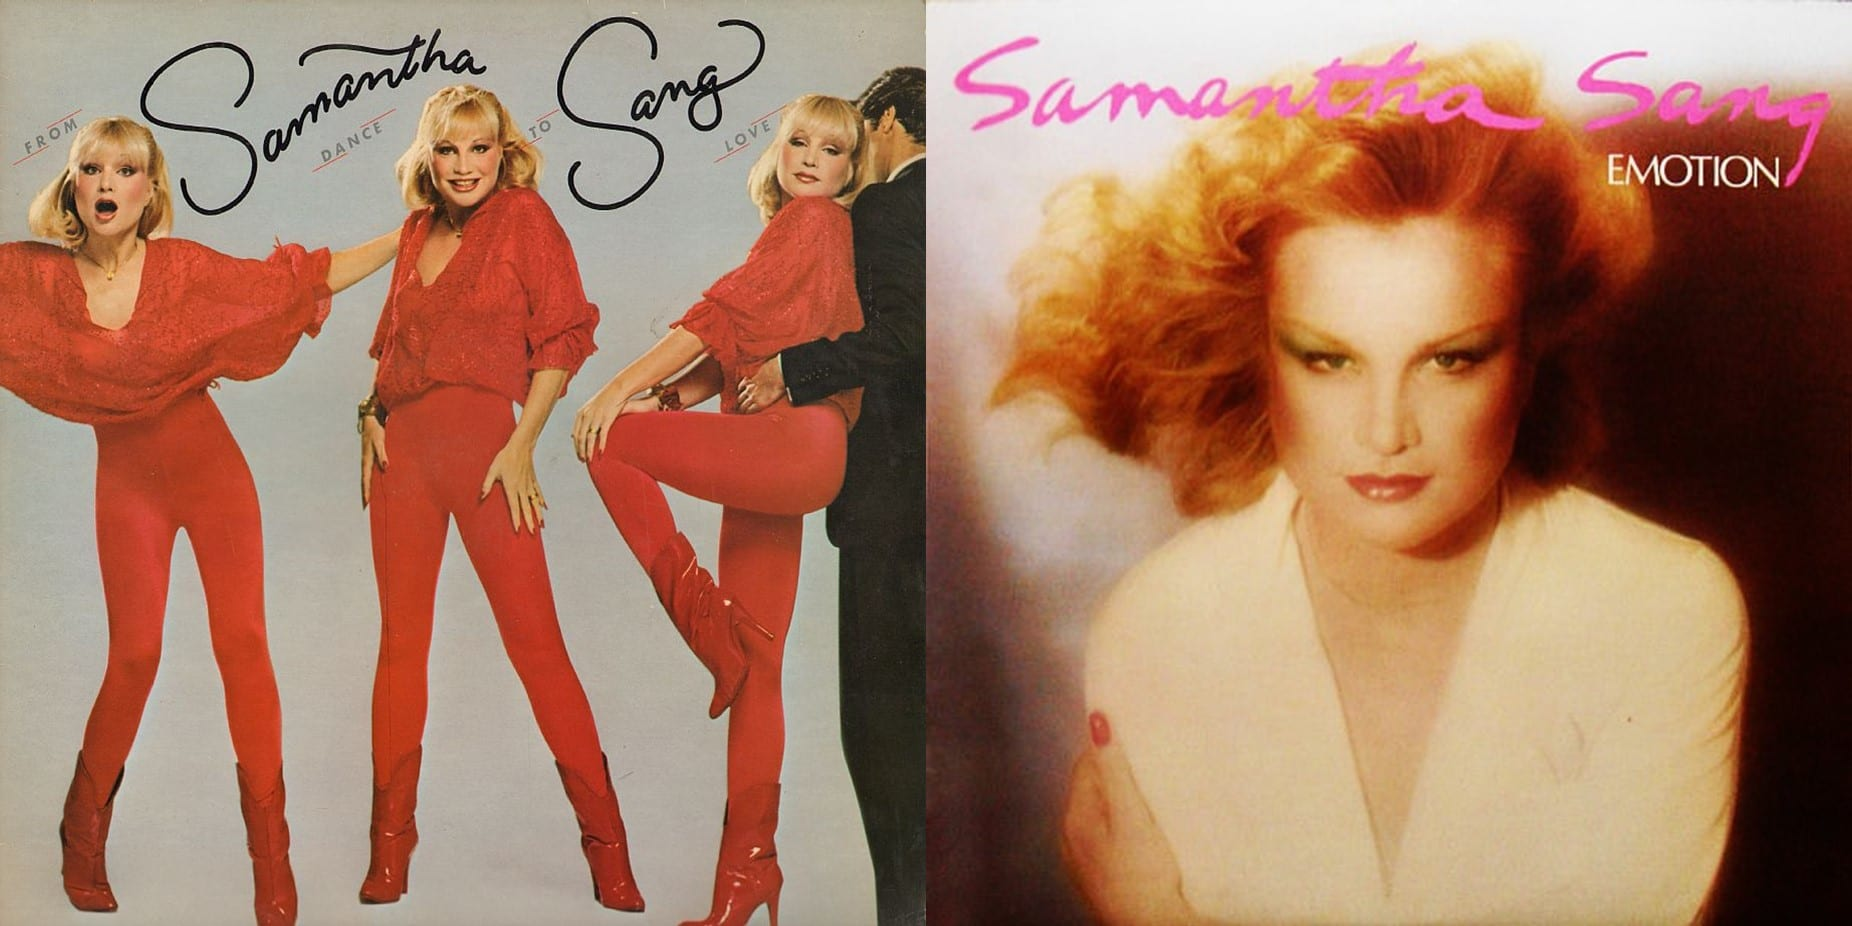 Samantha Sang - Emotion (1978) + From Dance To Love (1979) (2020) CD 6